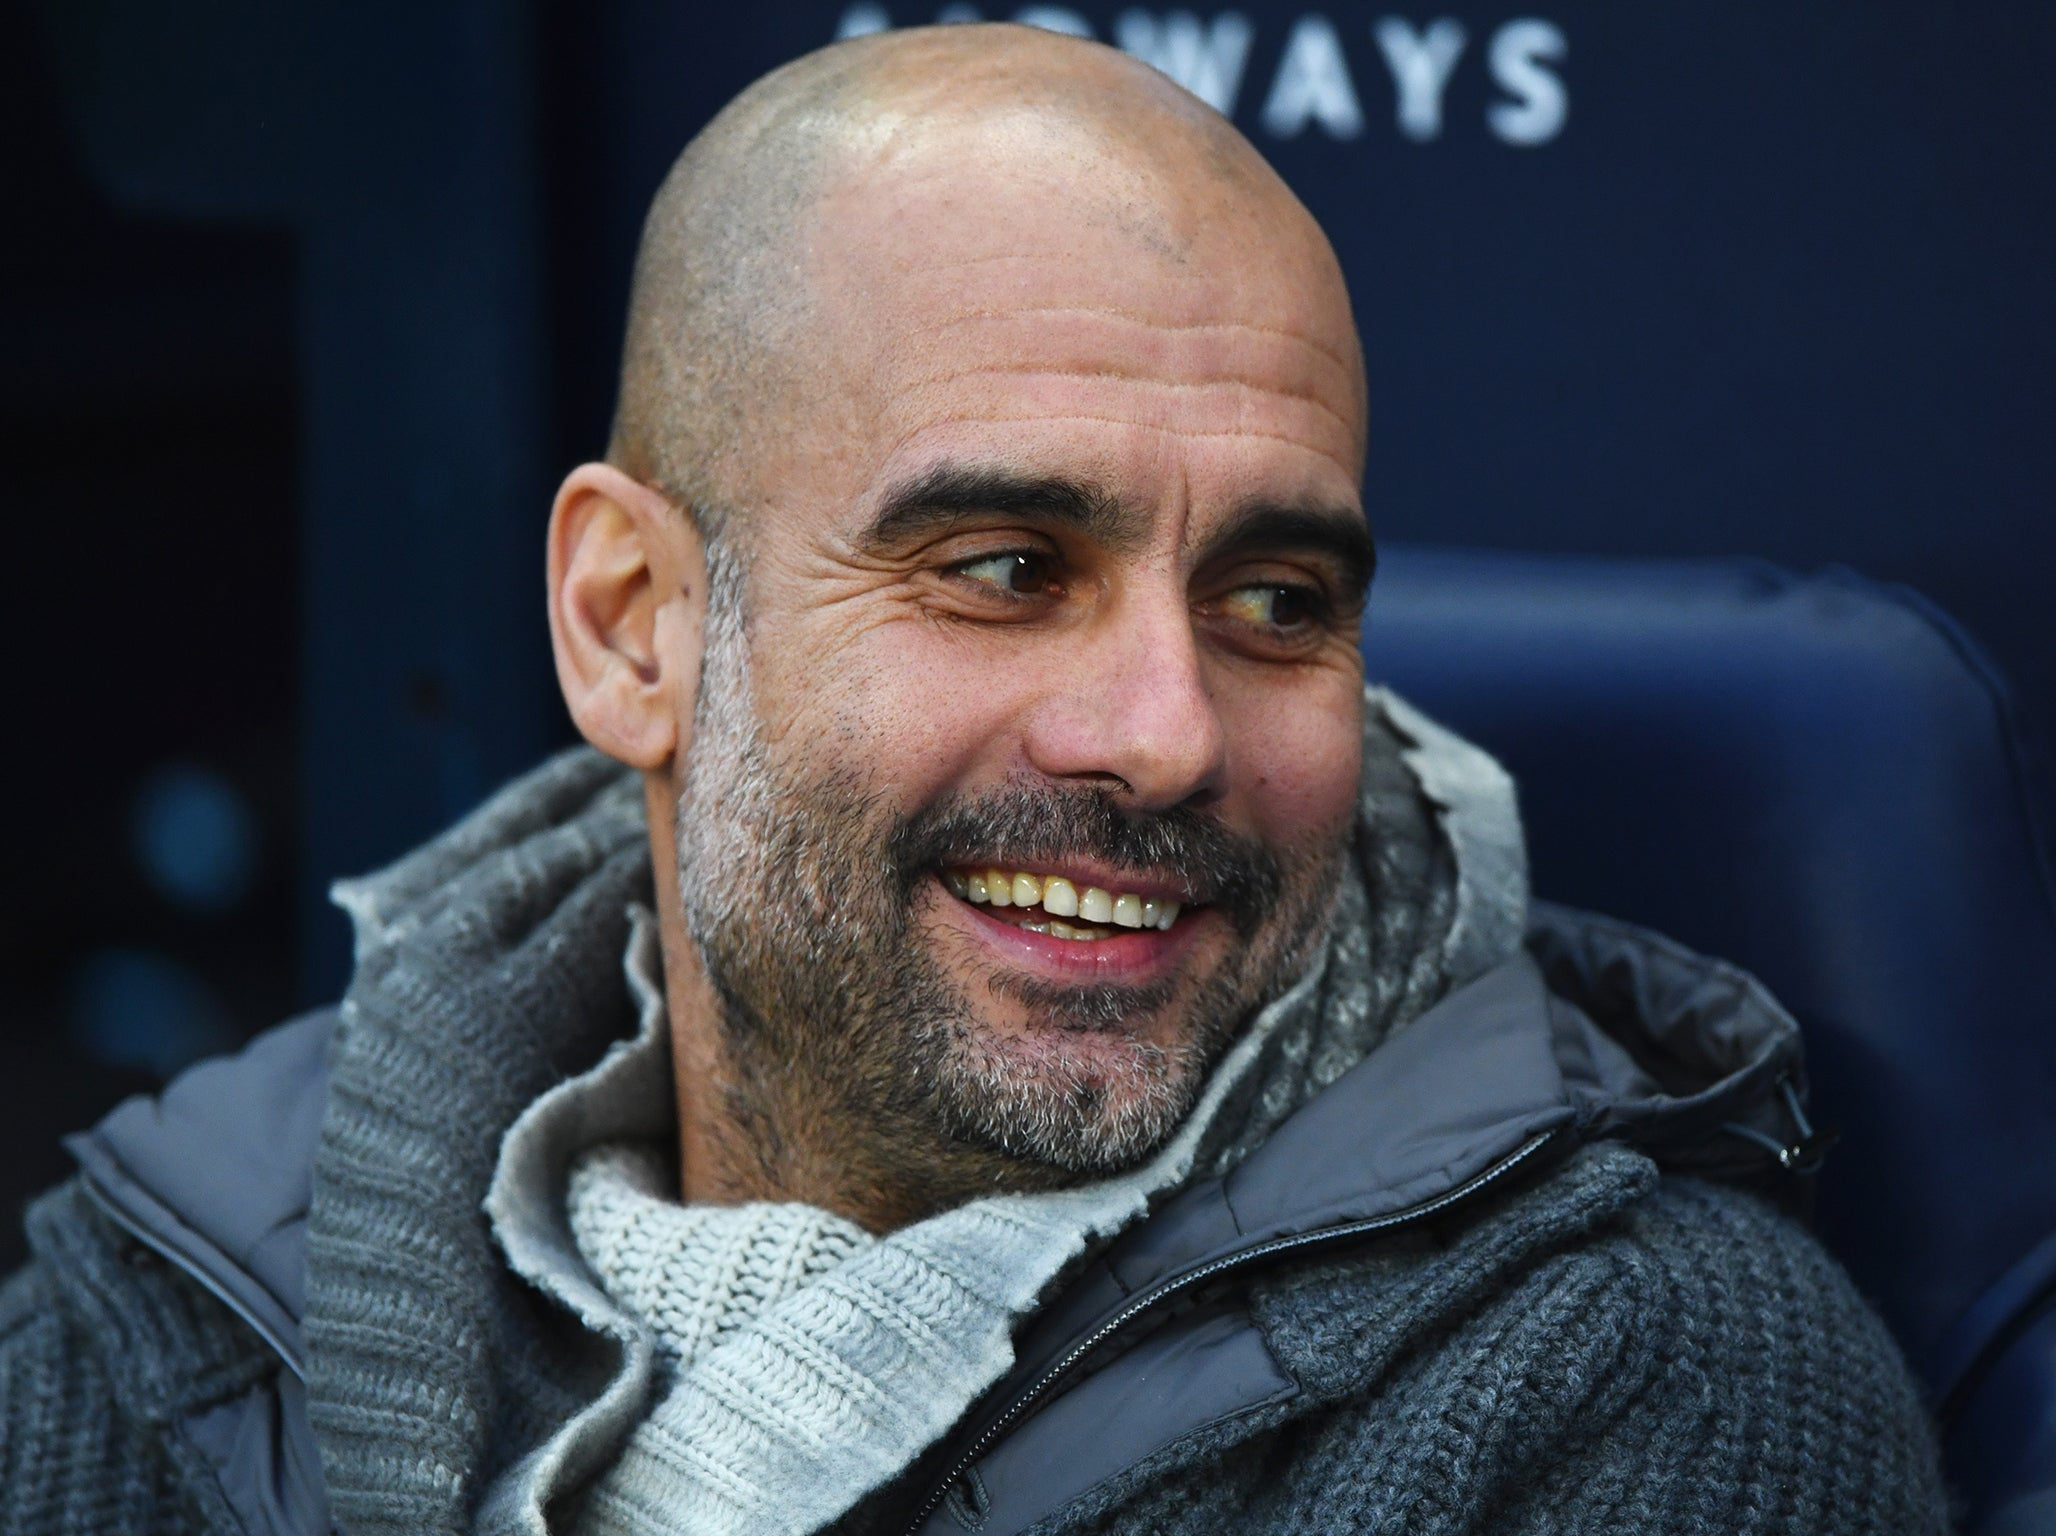 Manchester City news: Pep Guardiola not looking for any excuses in FA Cup against Newport County